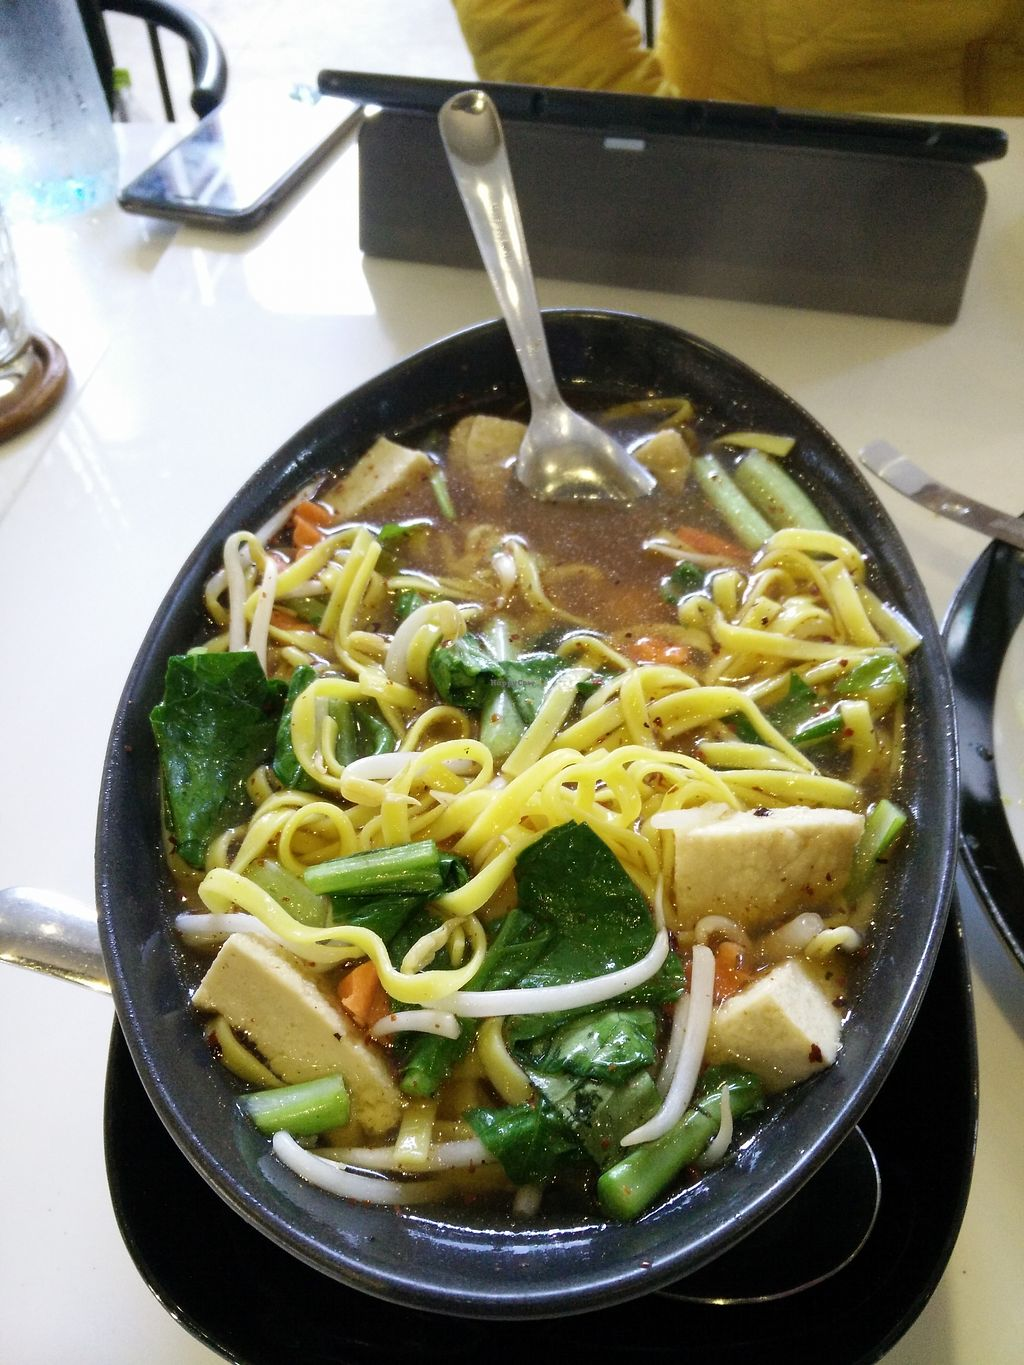 "Photo of Ama Vegan Kitchen  by <a href=""/members/profile/PDiddy"">PDiddy</a> <br/>Noodle soup <br/> January 1, 2018  - <a href='/contact/abuse/image/82316/341601'>Report</a>"